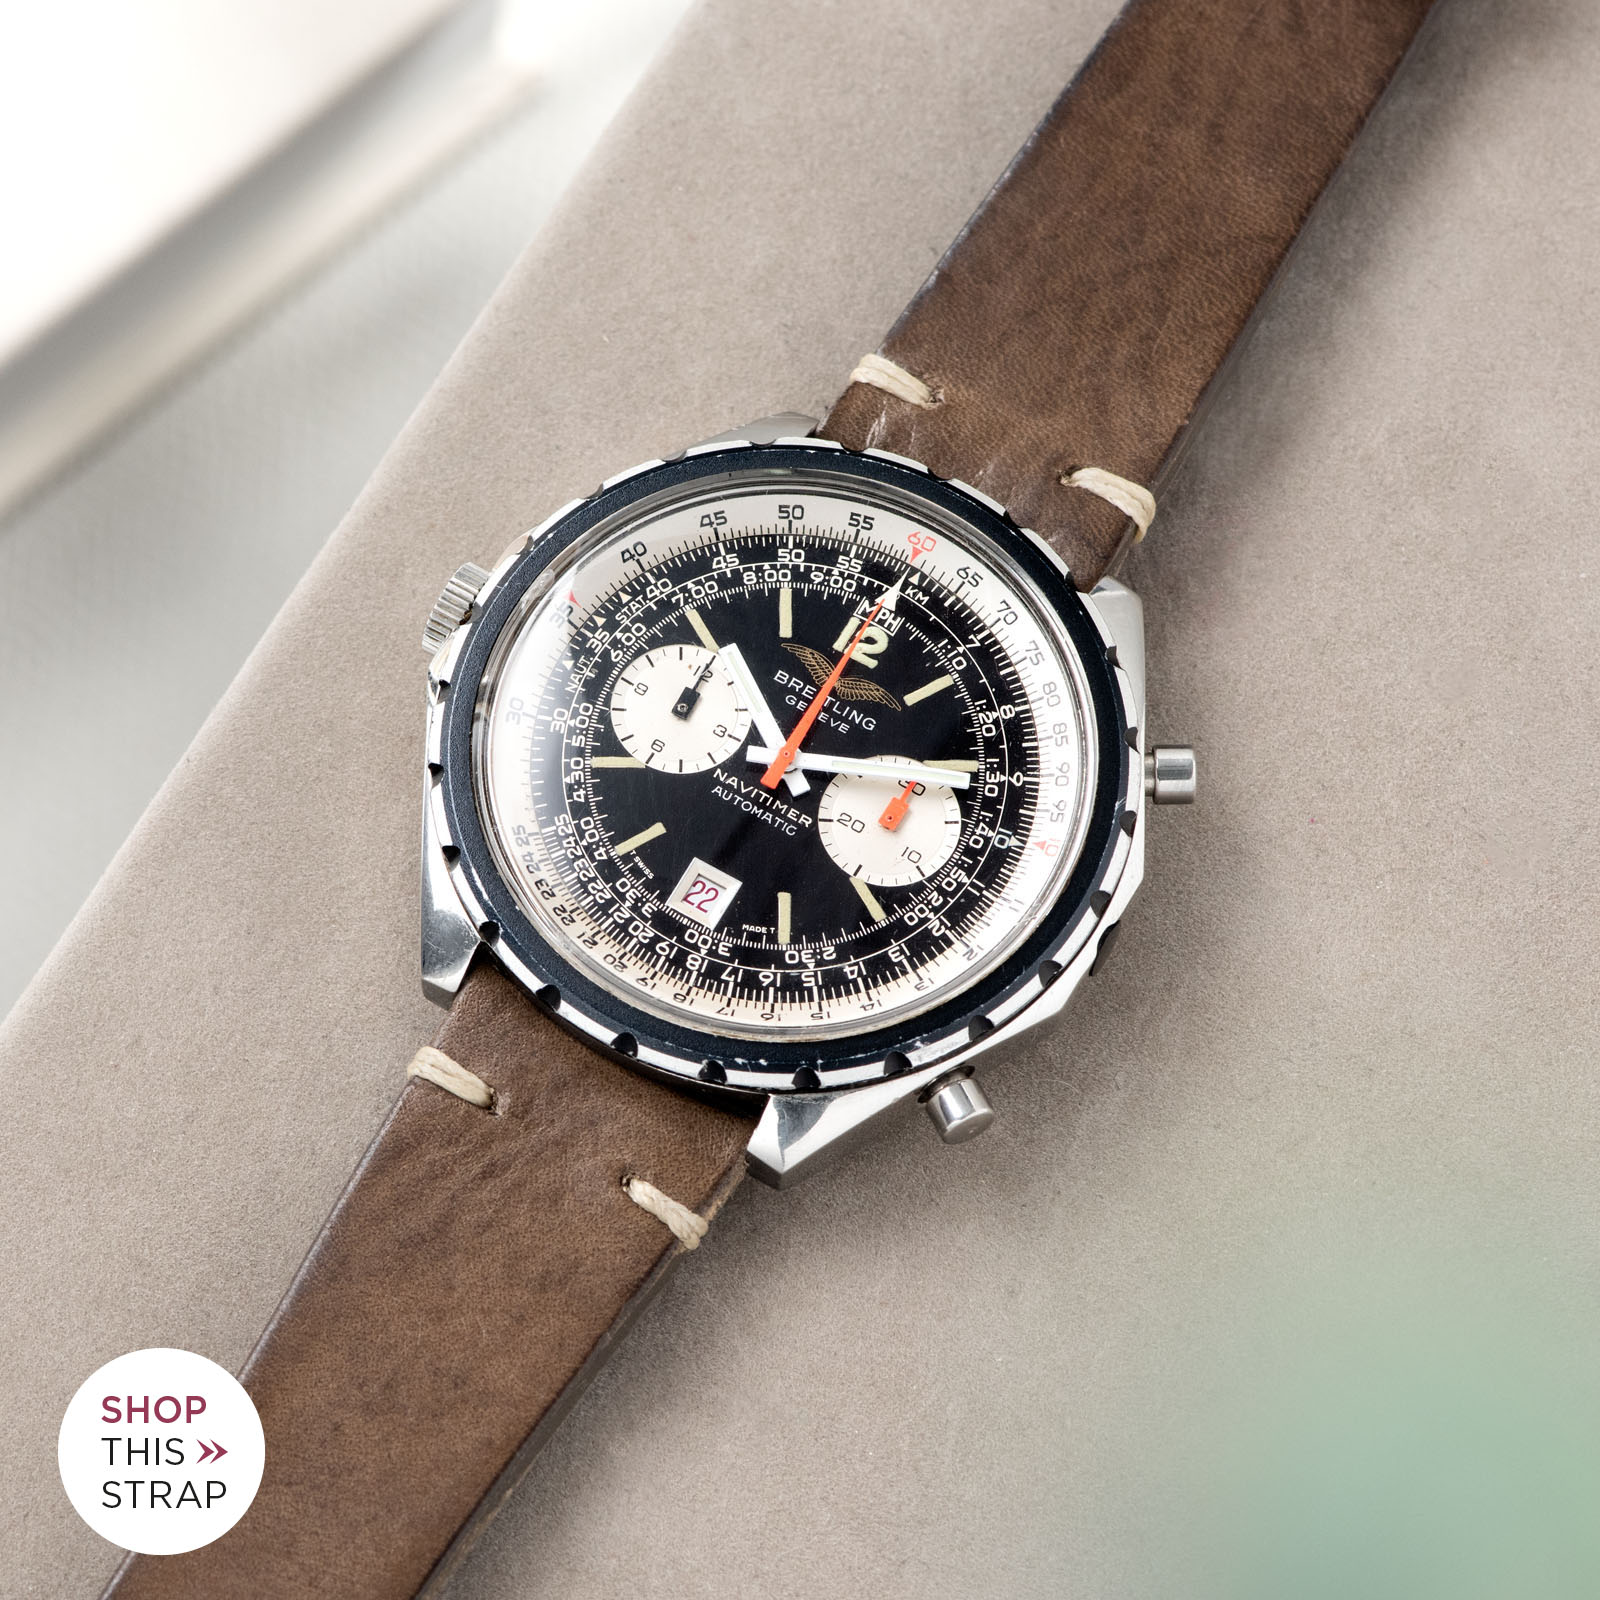 Bulang and Sons_Strapguide_Breitling Navitimer ref issued to iraqi air force ref 1806_Smokeyjack Grey Leather Watch Strap _005